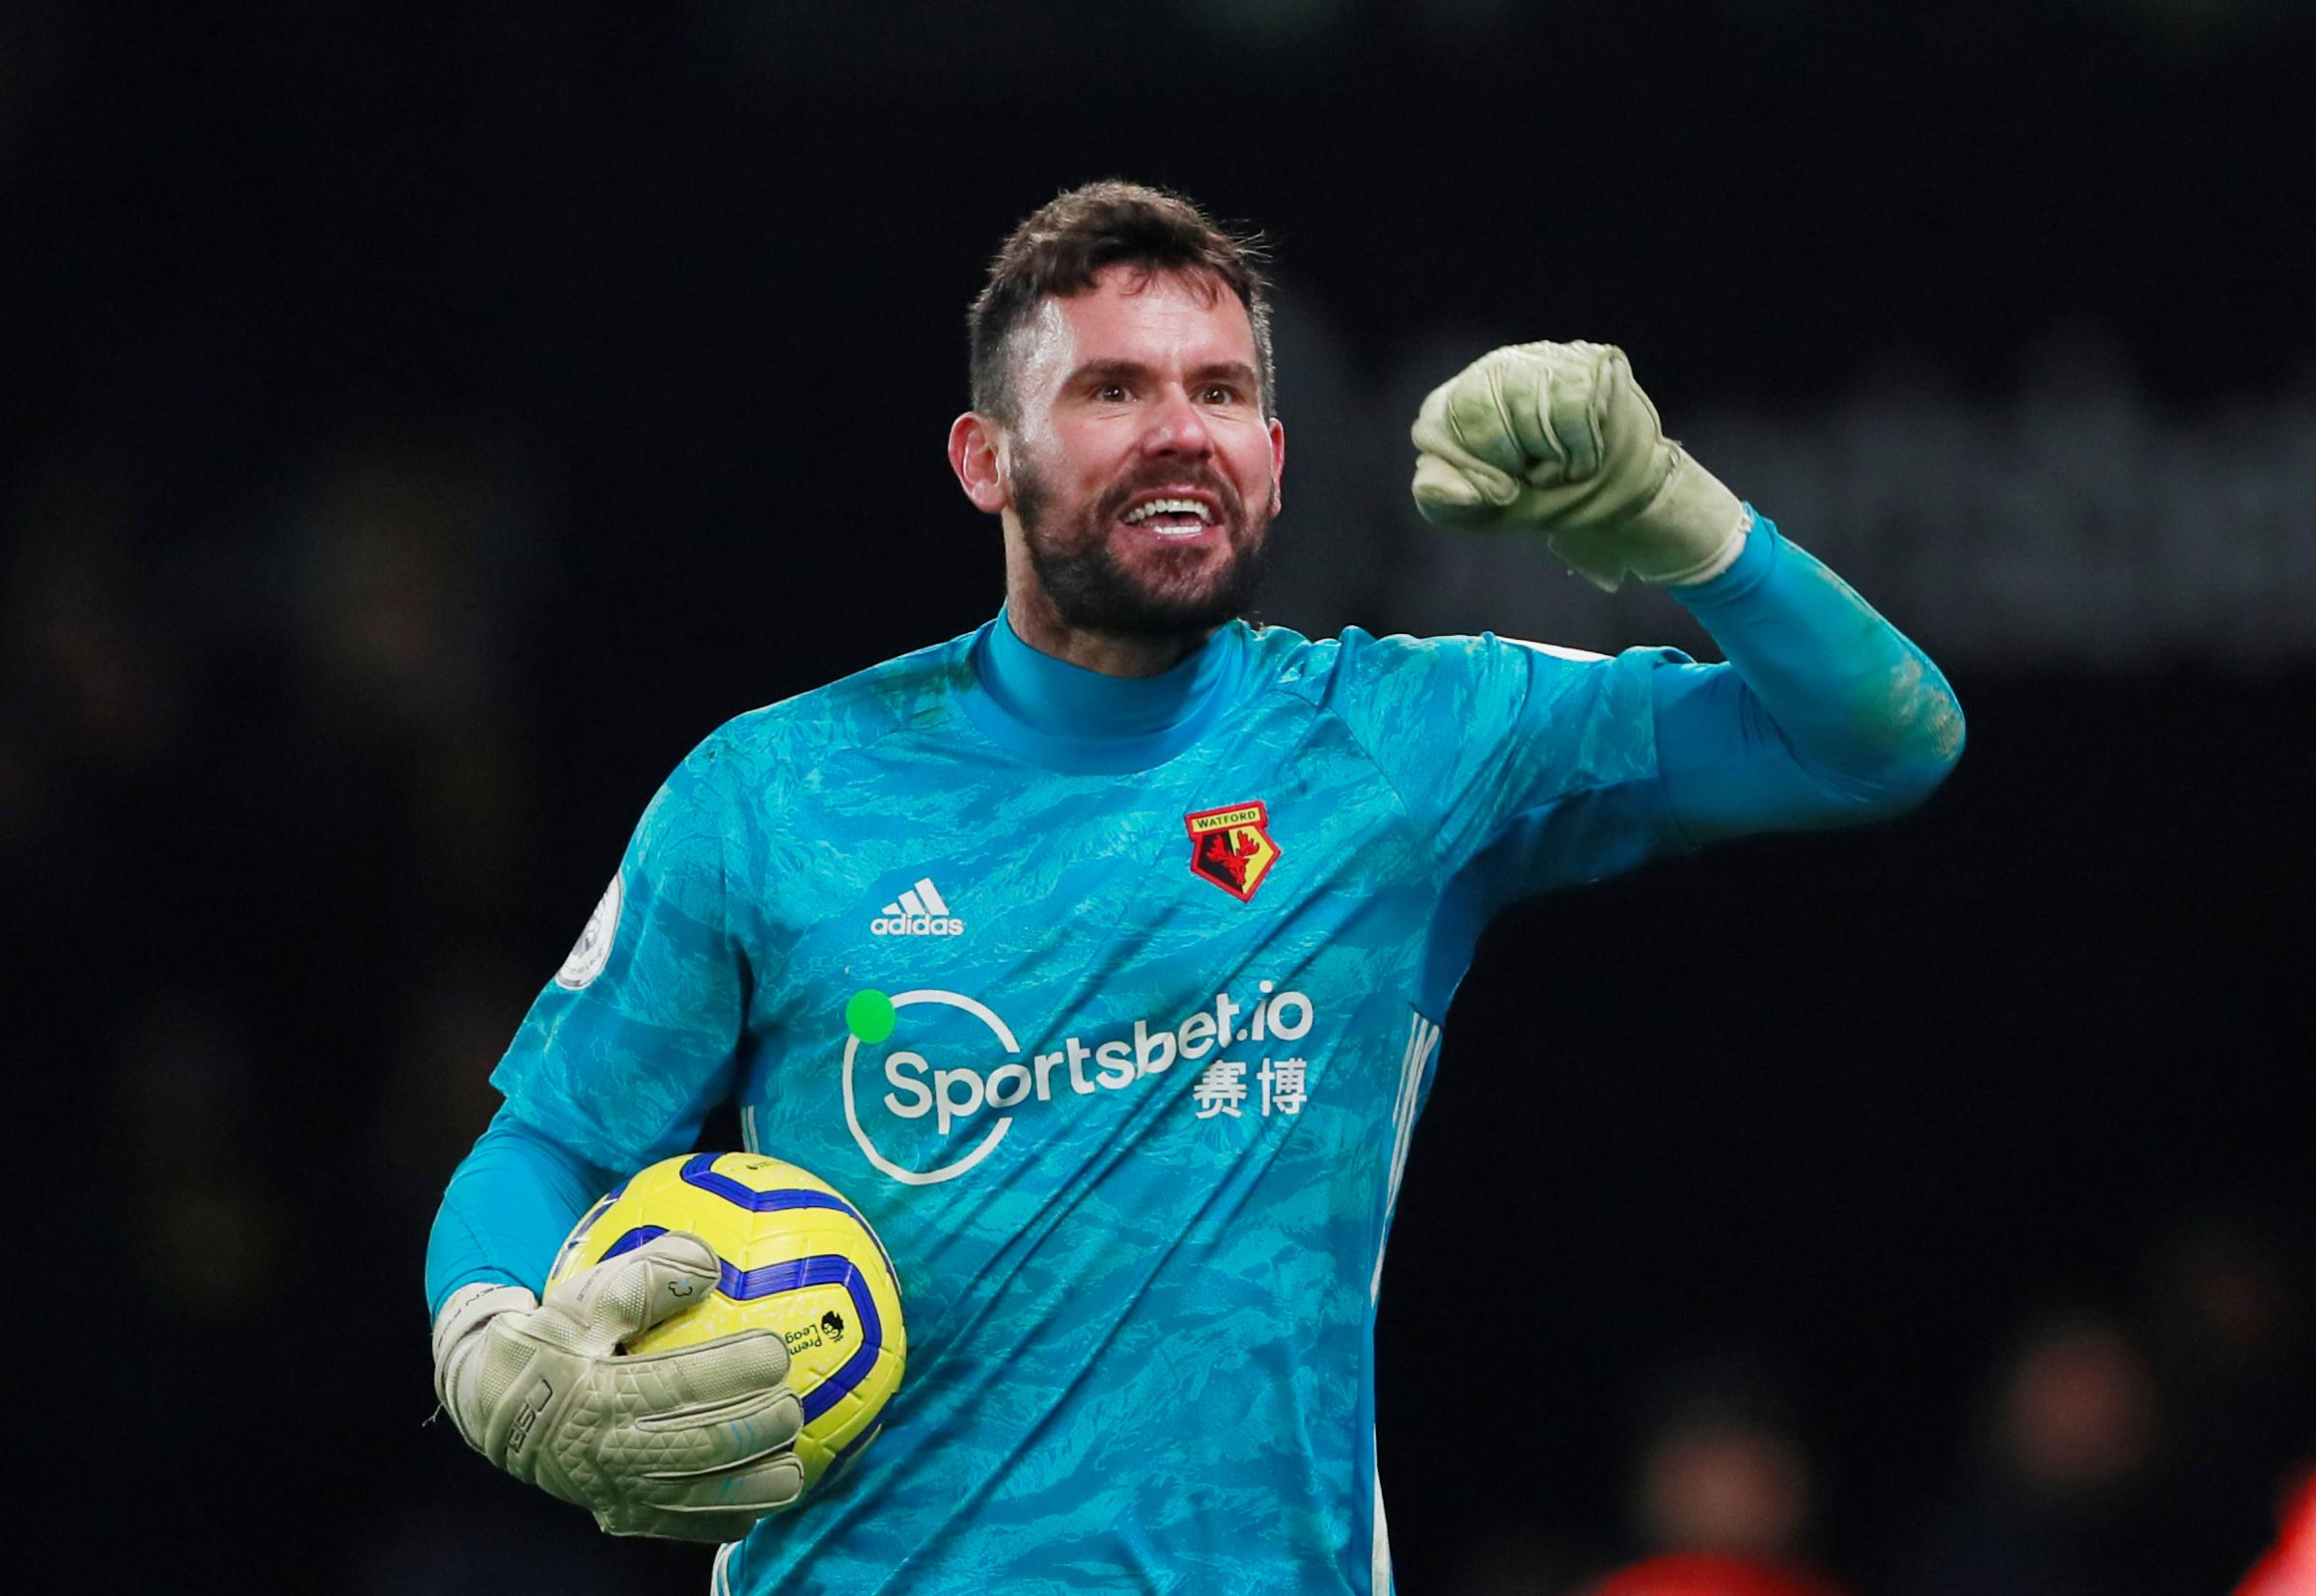 Watford goalkeeper Ben Foster thinks mentality is key to his impressive form